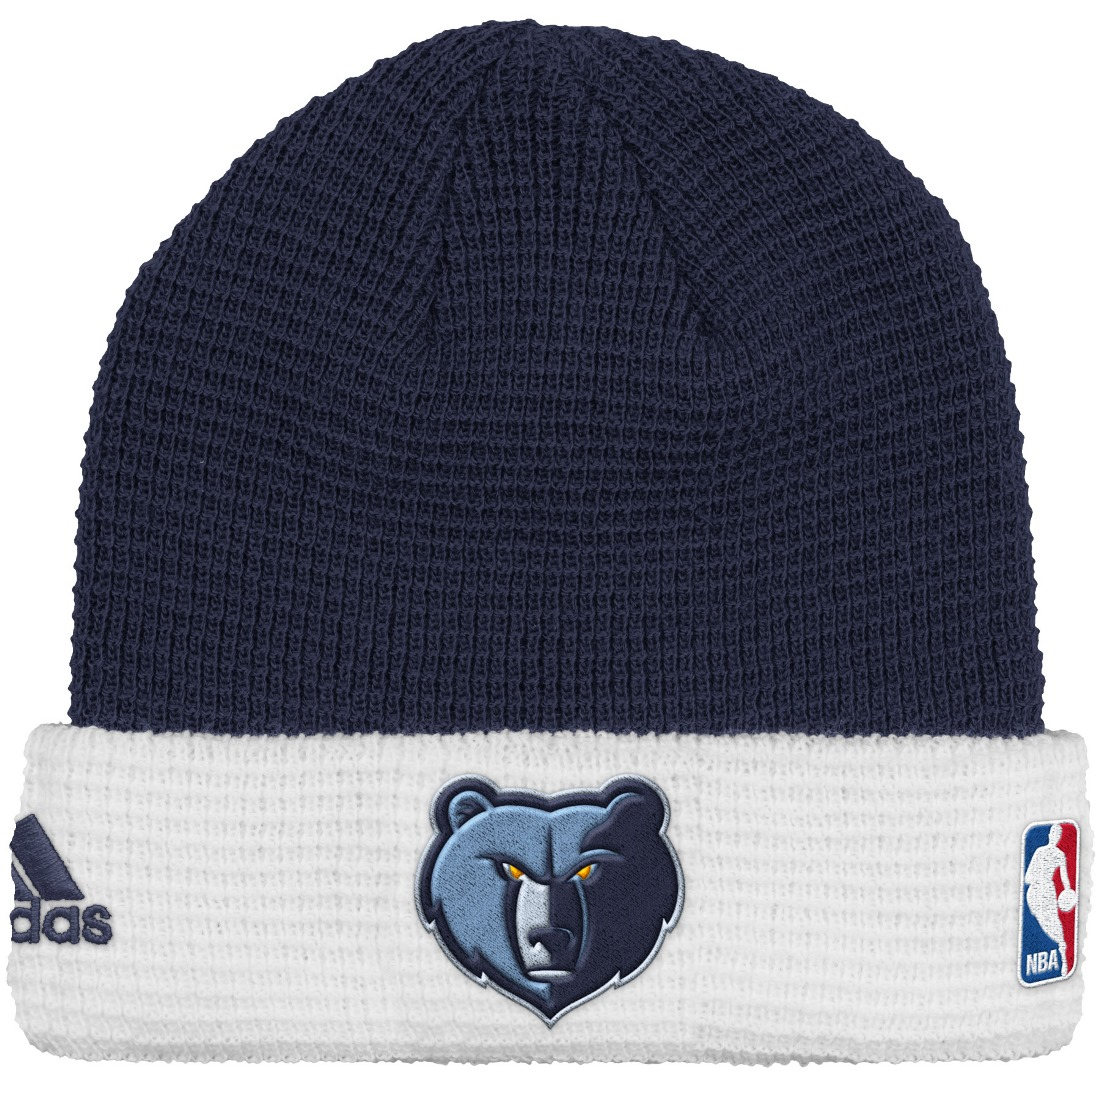 Memphis Grizzlies Adidas NBA 2015 Authentic Team Cuffed Knit Hat by Adidas